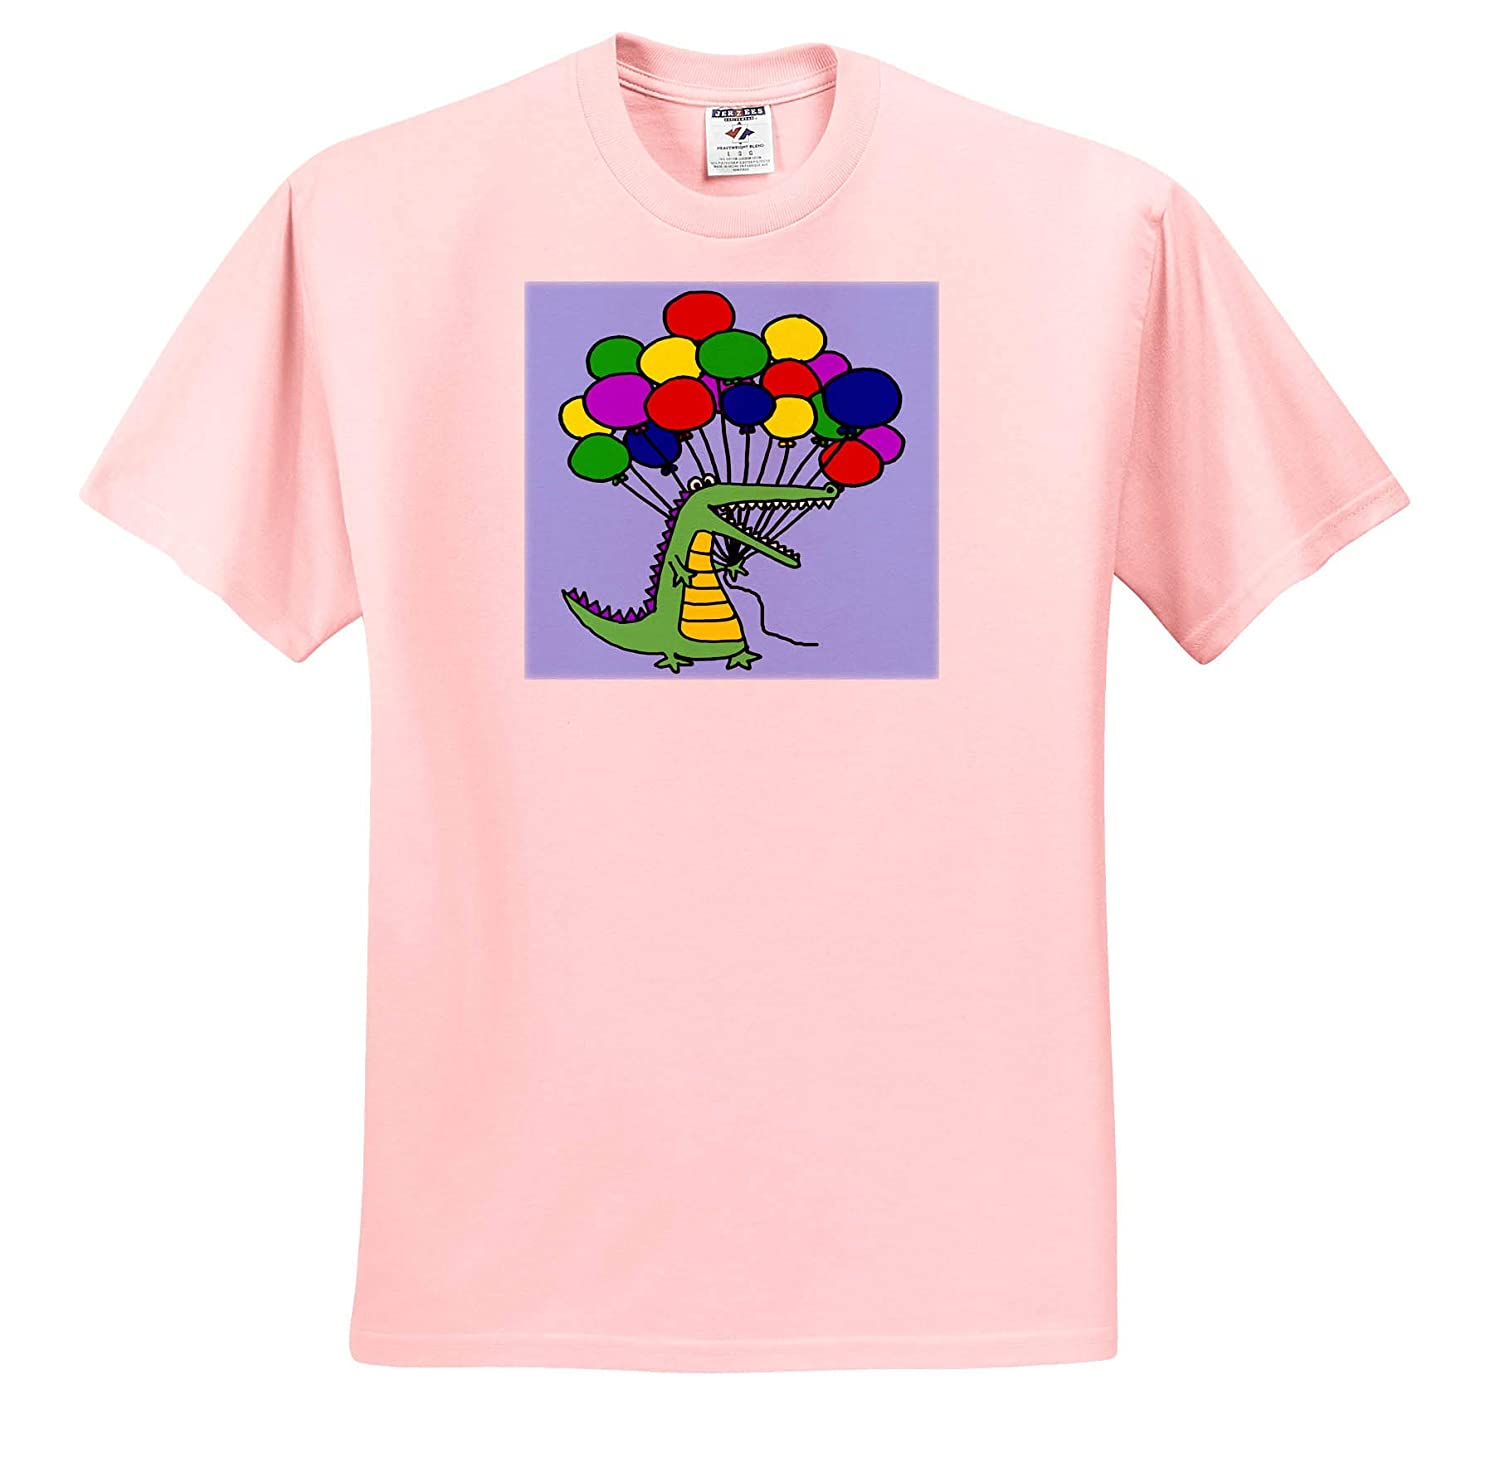 ts/_311663 3dRose All Smiles Art Adult T-Shirt XL Funny Cute Alligator or Crocodile Holding Colorful Balloons Animals